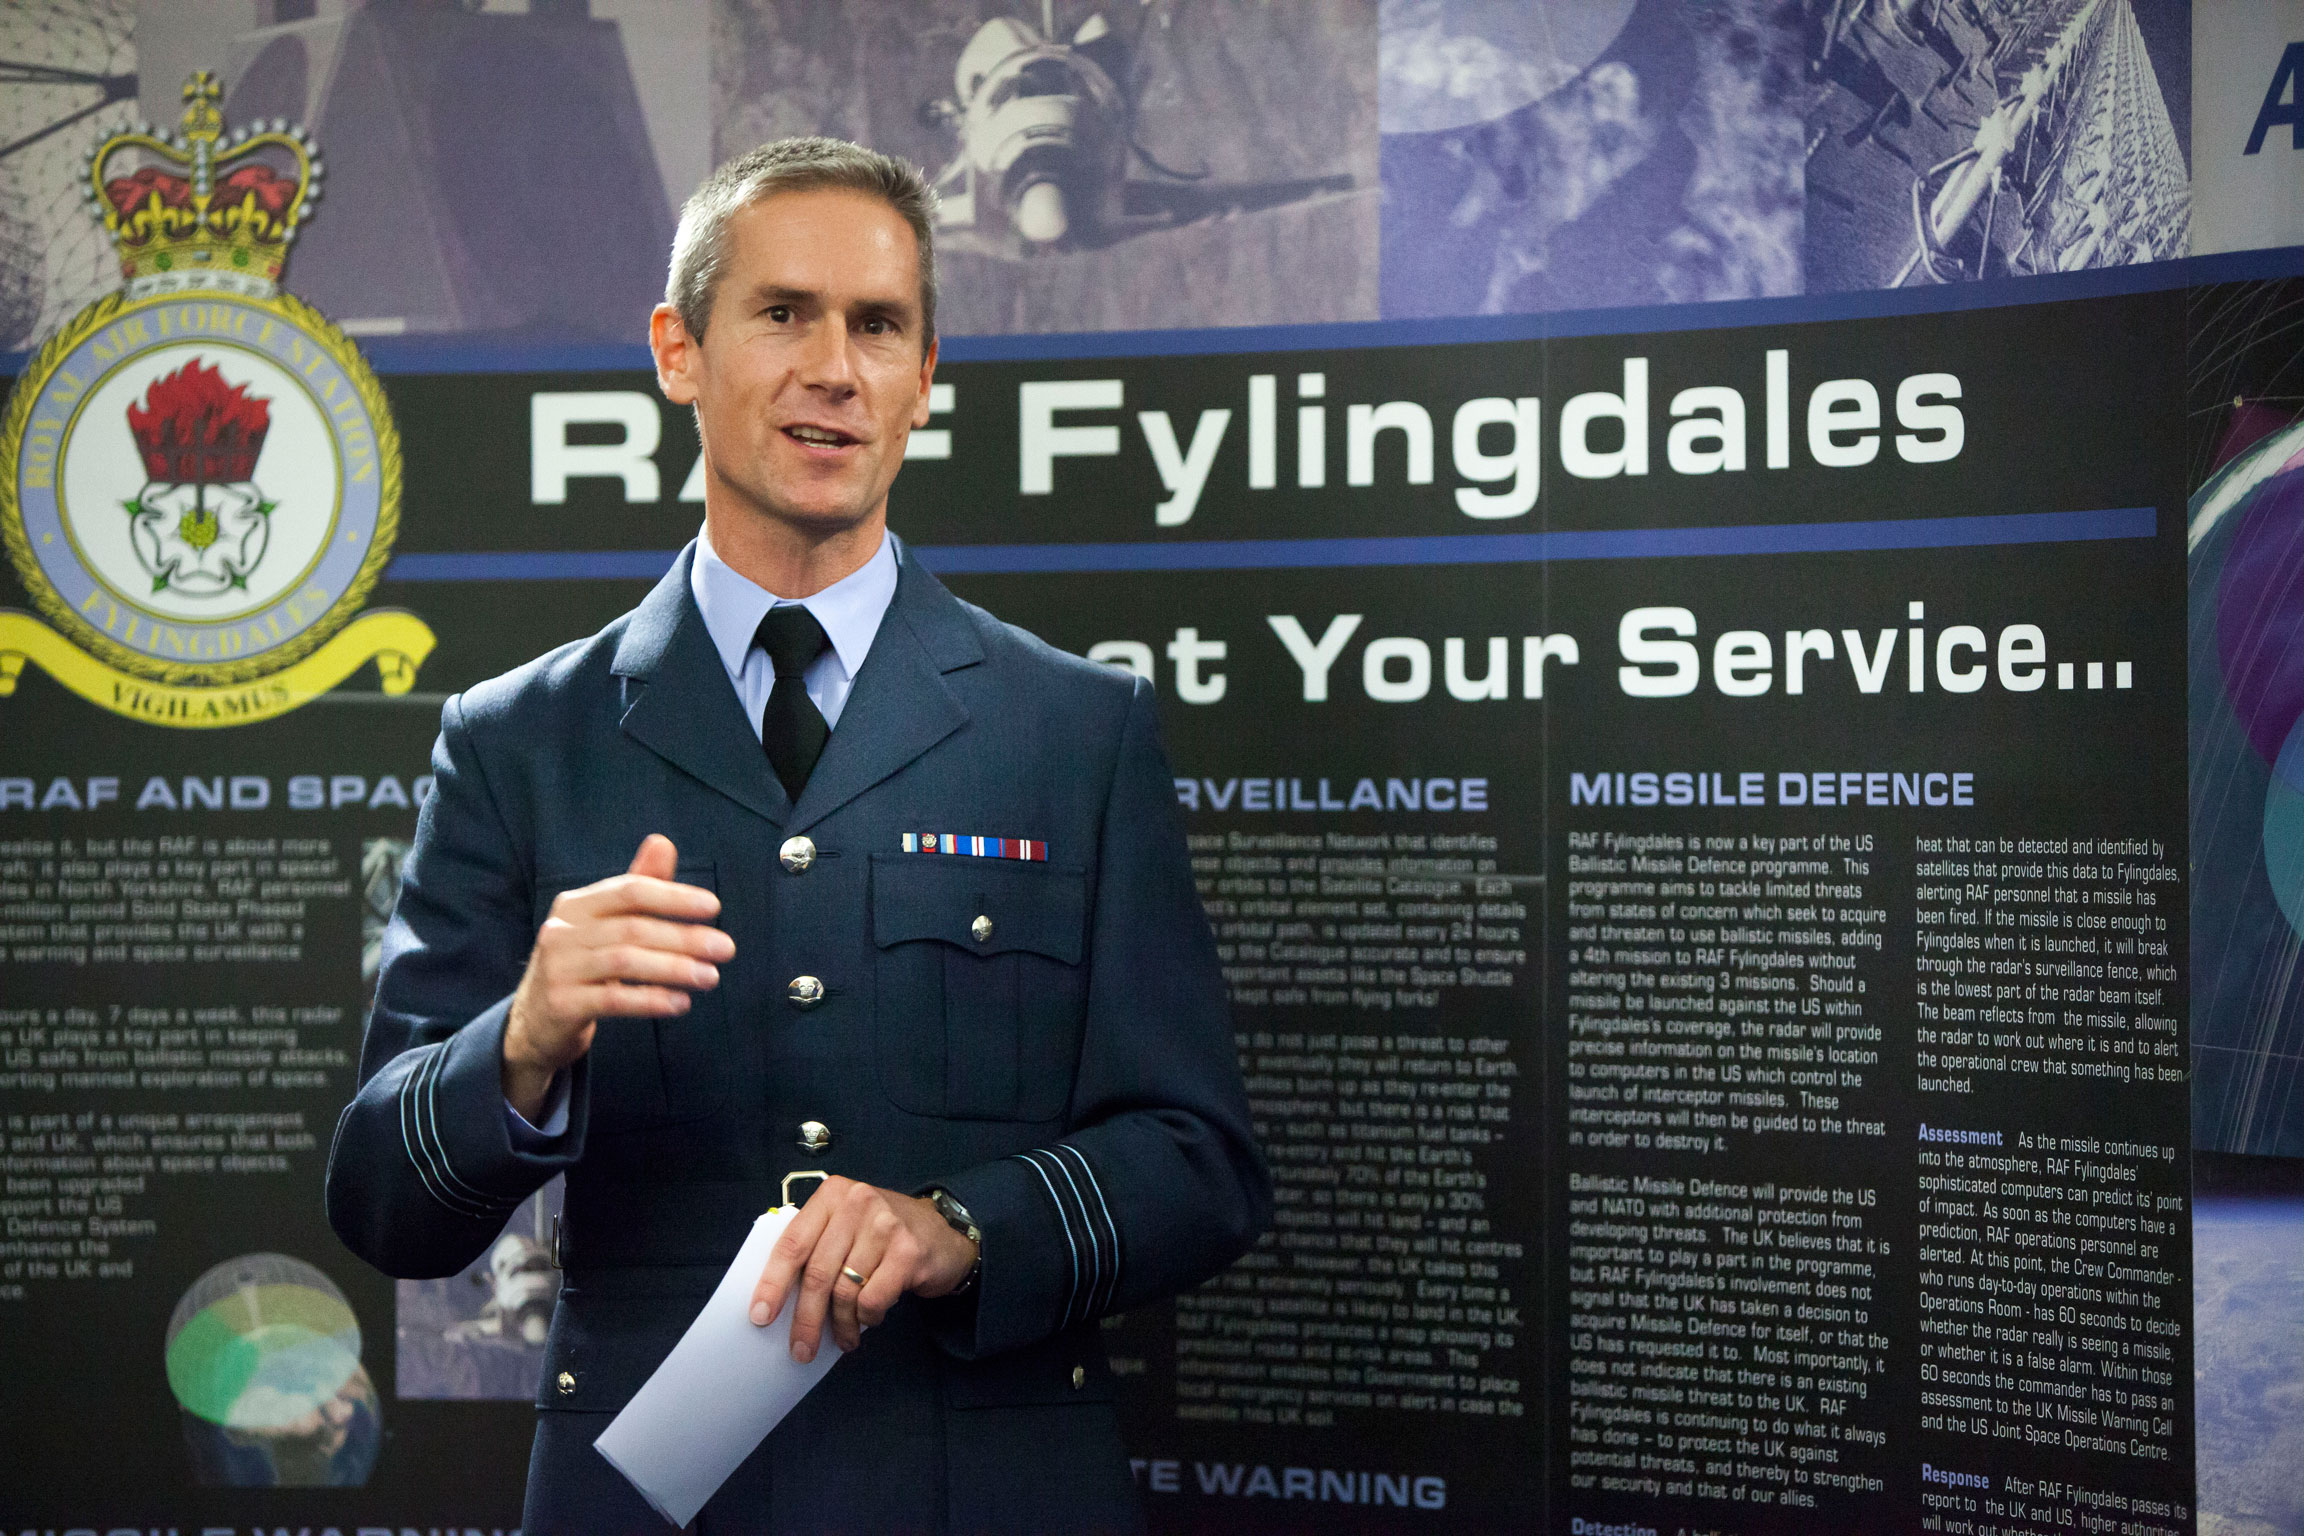 Wing Commander Dave Keighley MA.